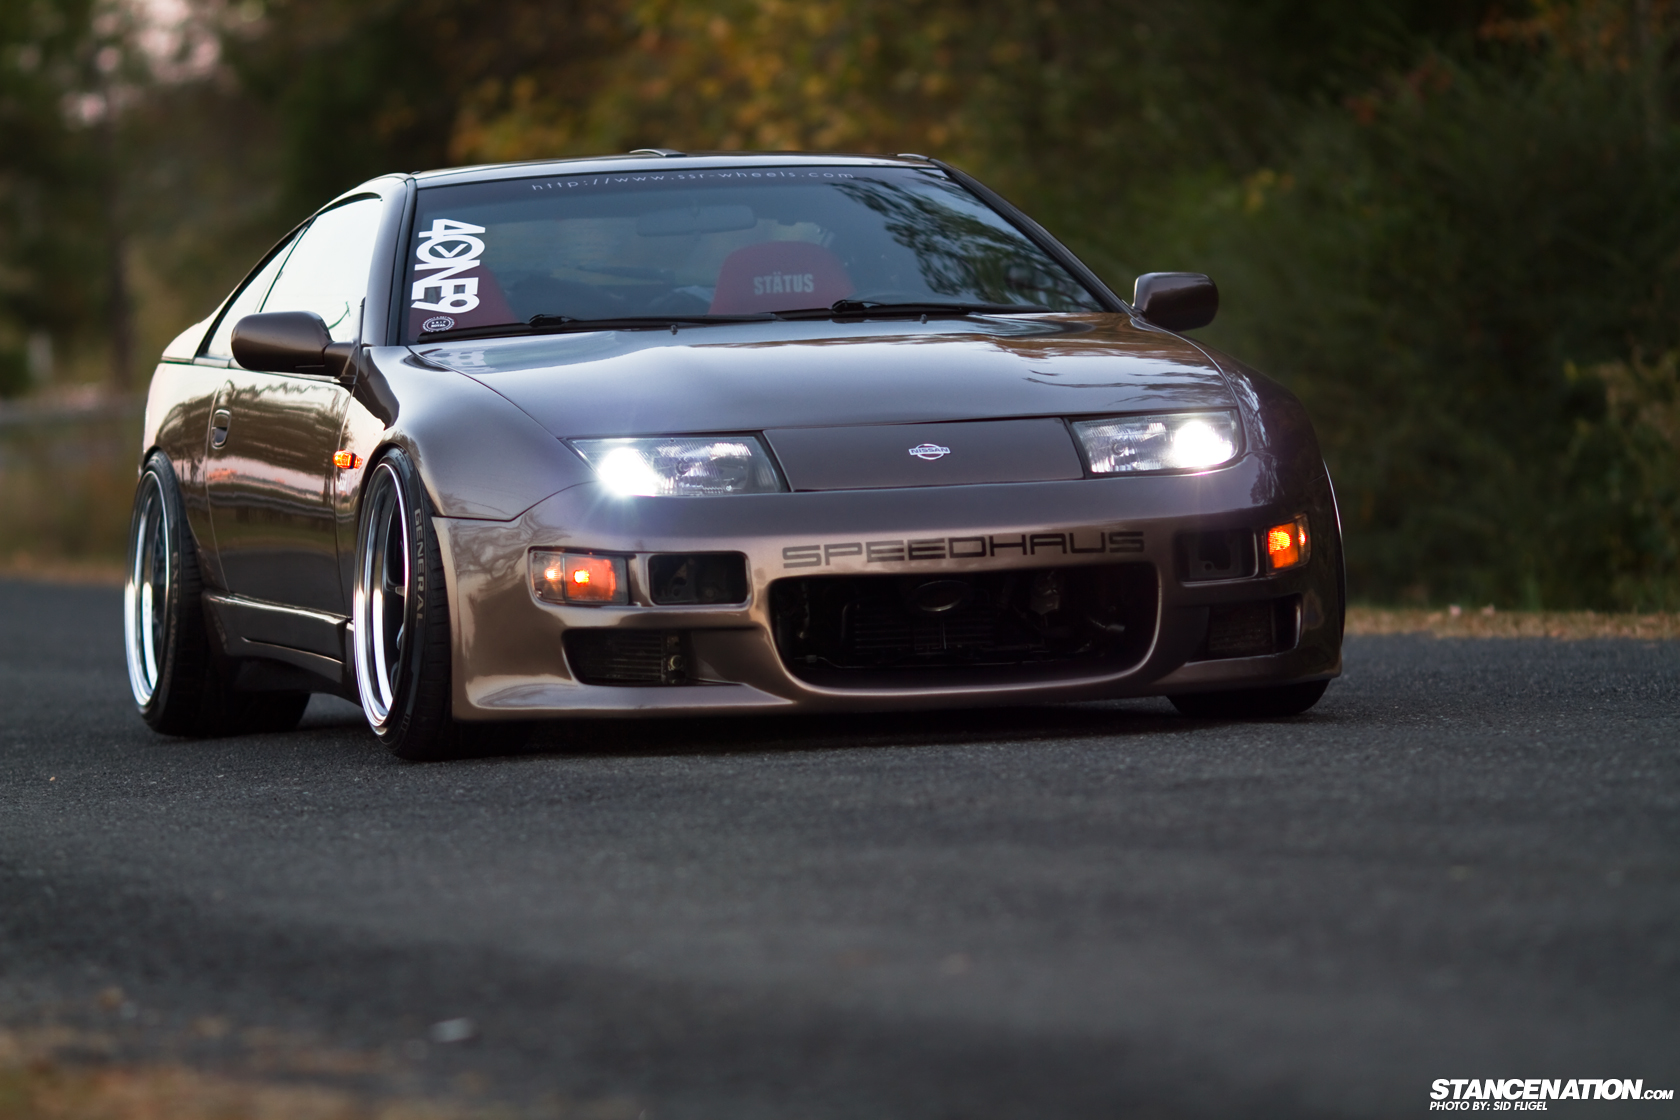 HD wallpapers 300zx wallpaper hd